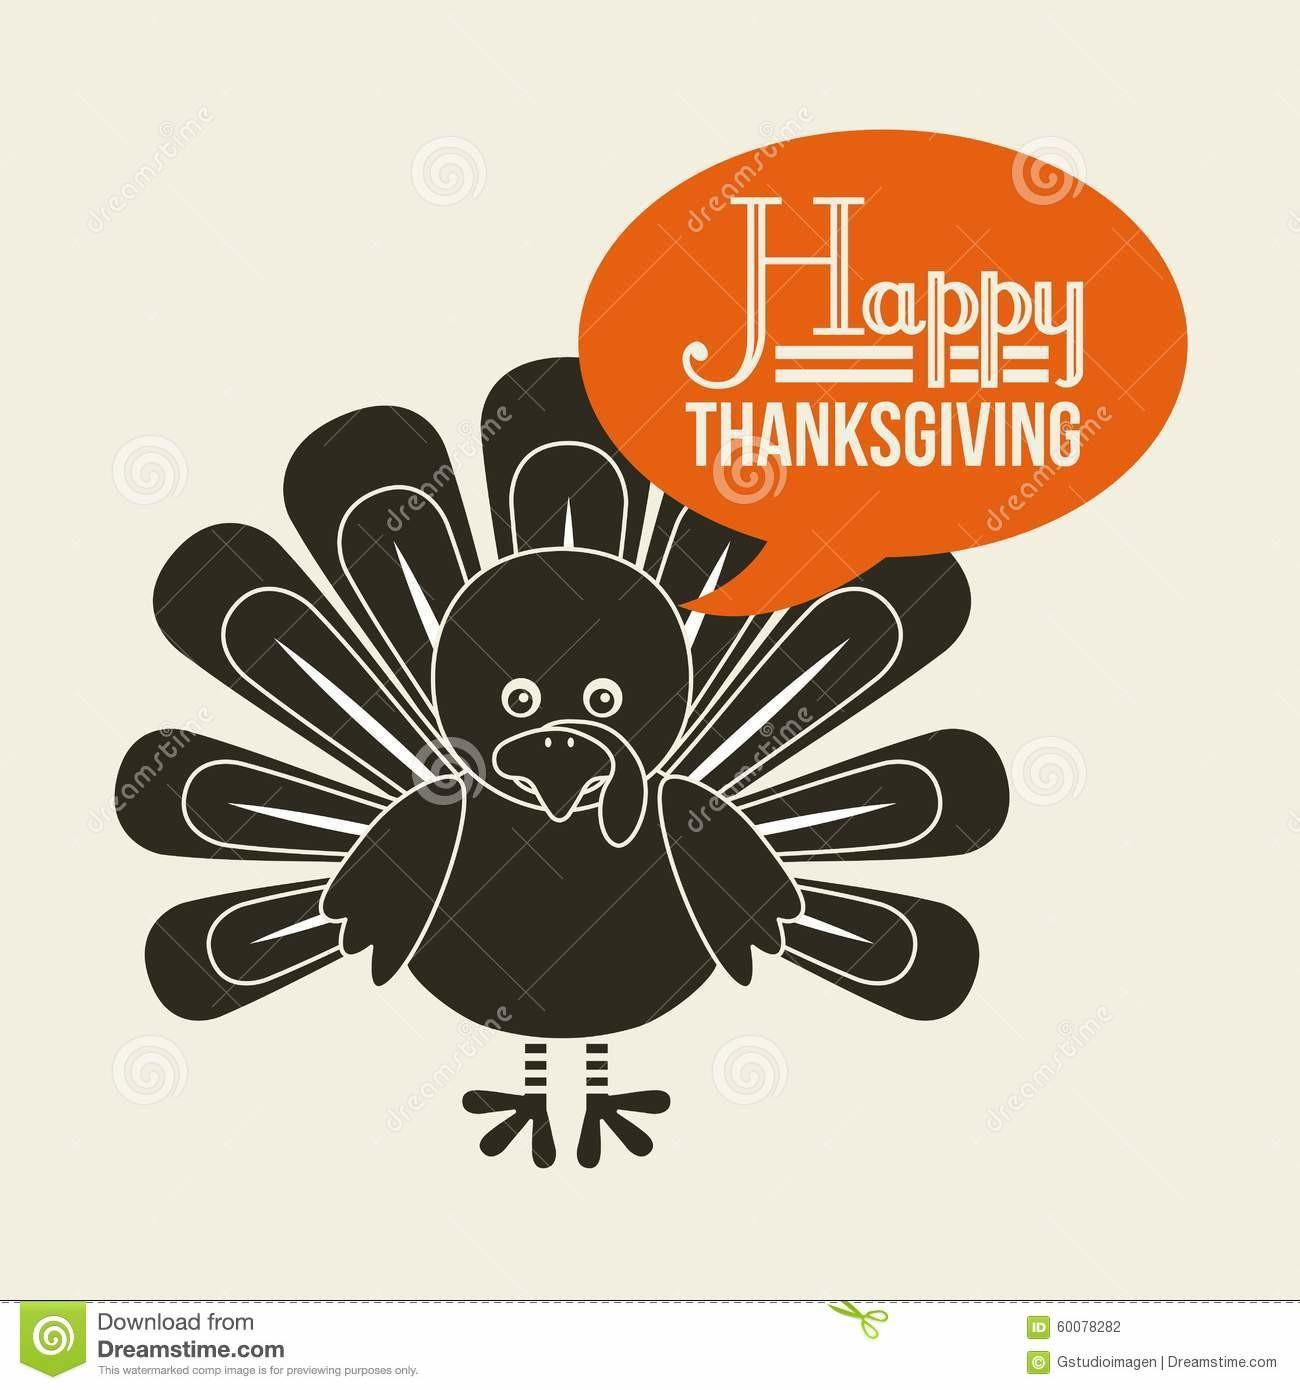 Happy Thanksgiving Stock Vector